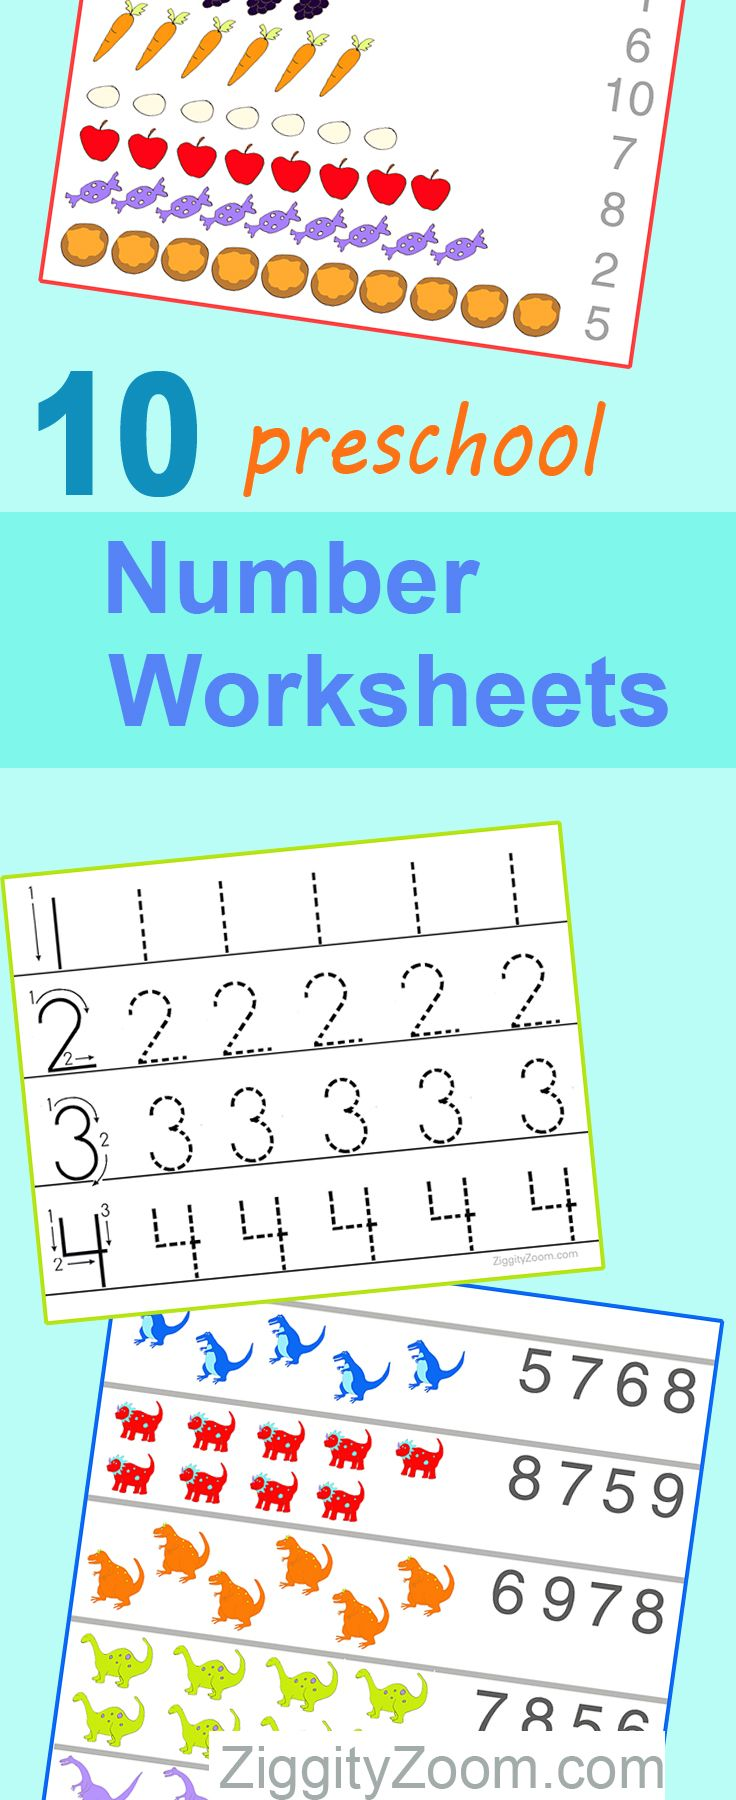 10 Preschool Math Worksheets- Number Recognition, Flashcards ...